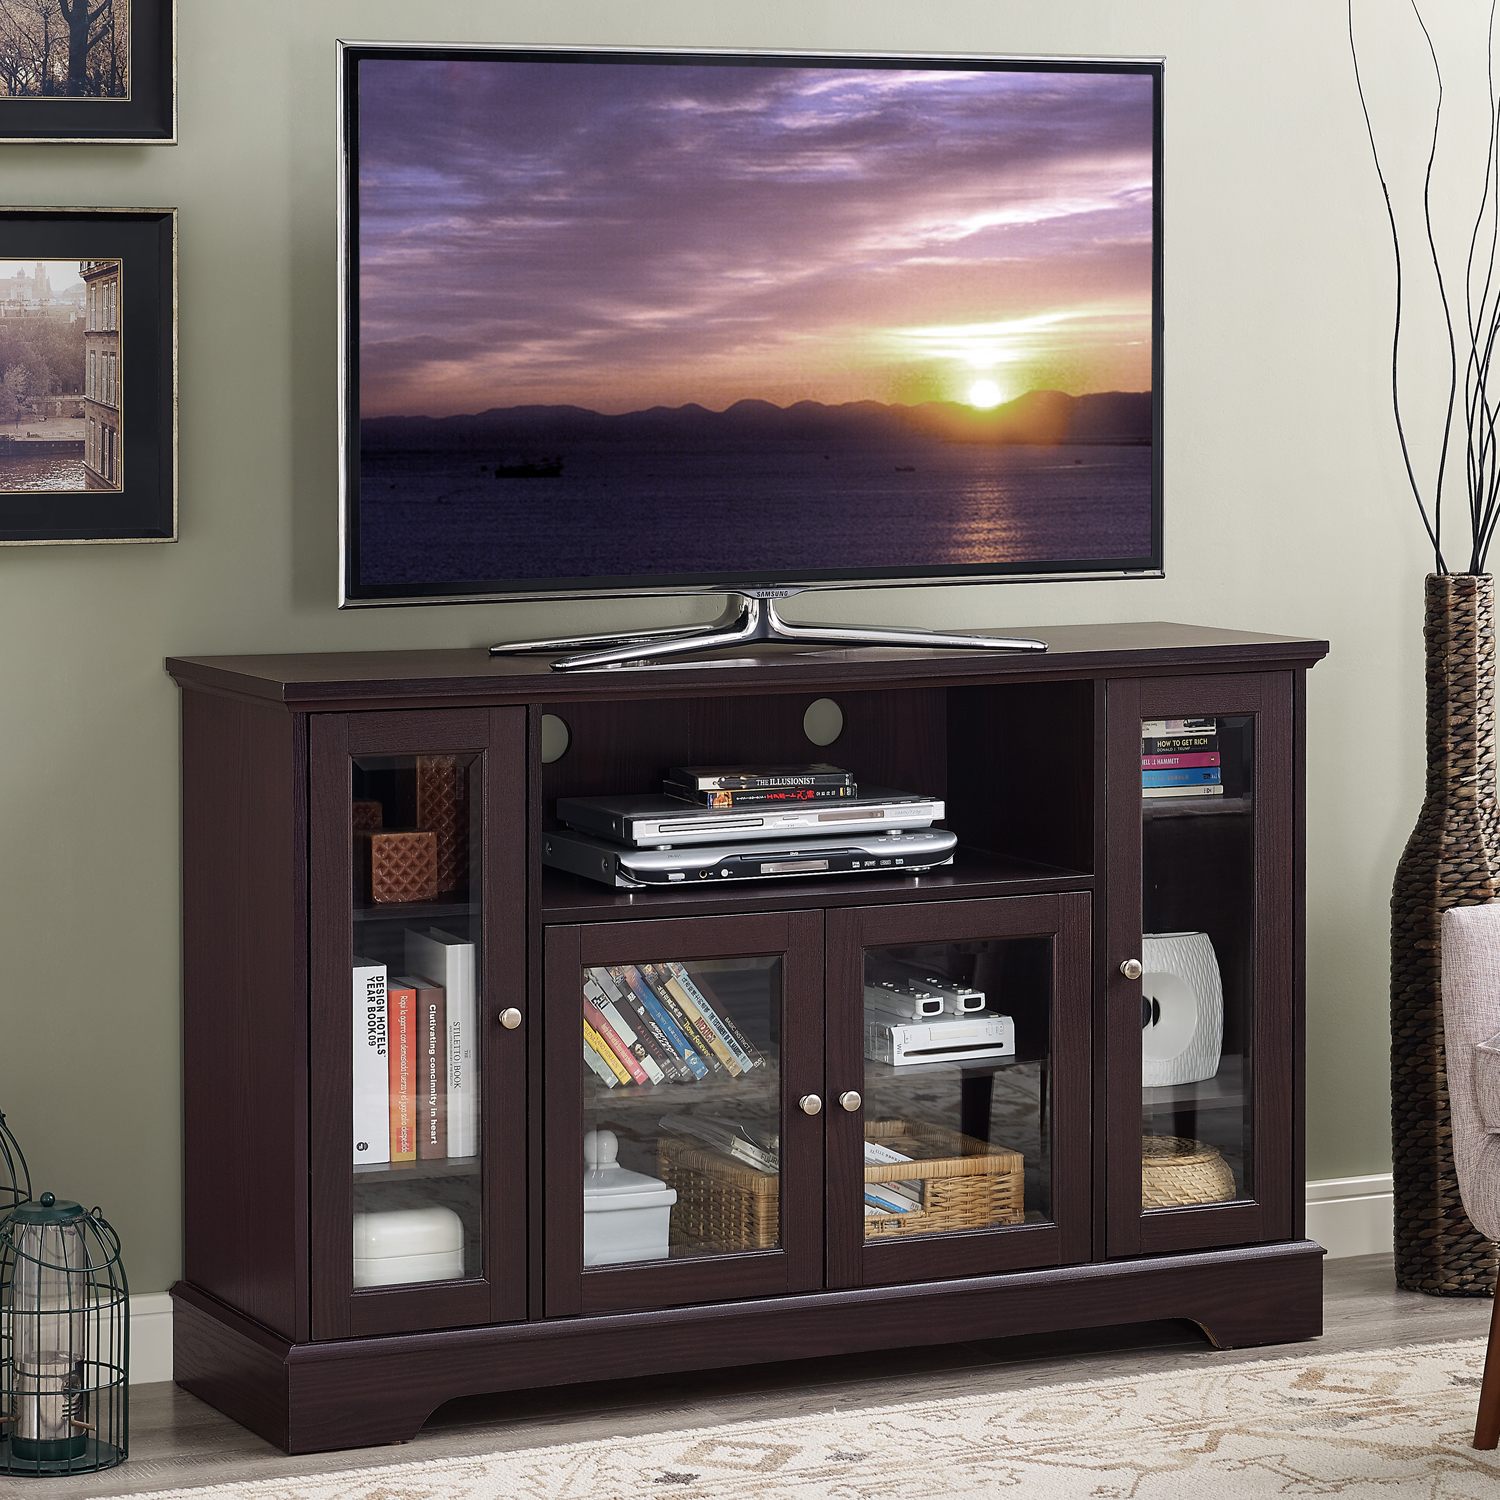 Home Source Mocha Plasma TV Stand with 4 Glass Storage Cabinets and Middle Shelf